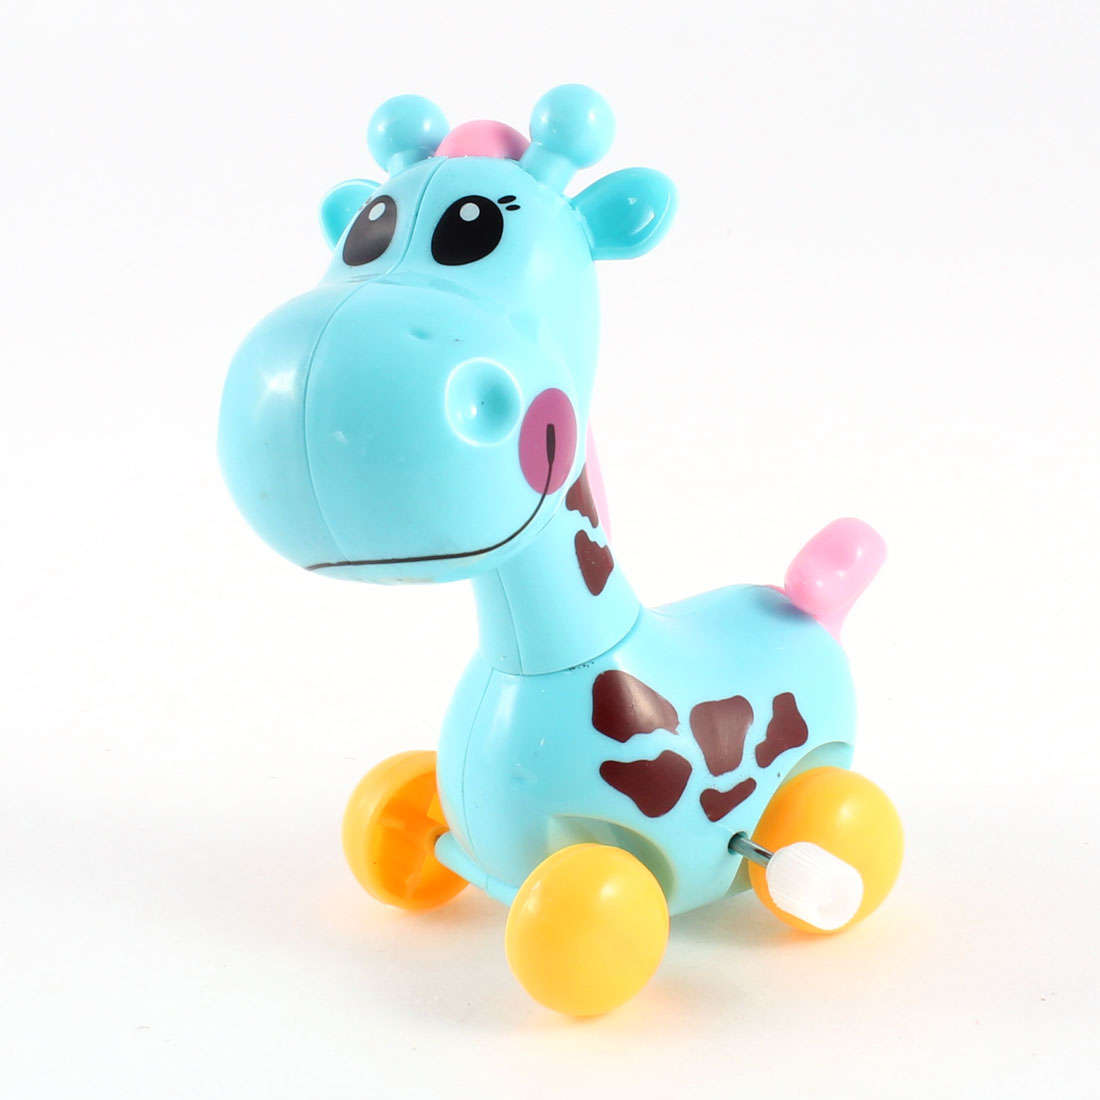 Blue Yellow Plastic Wind Up Design Clockwork Cartoon Giraffe Toy for Child